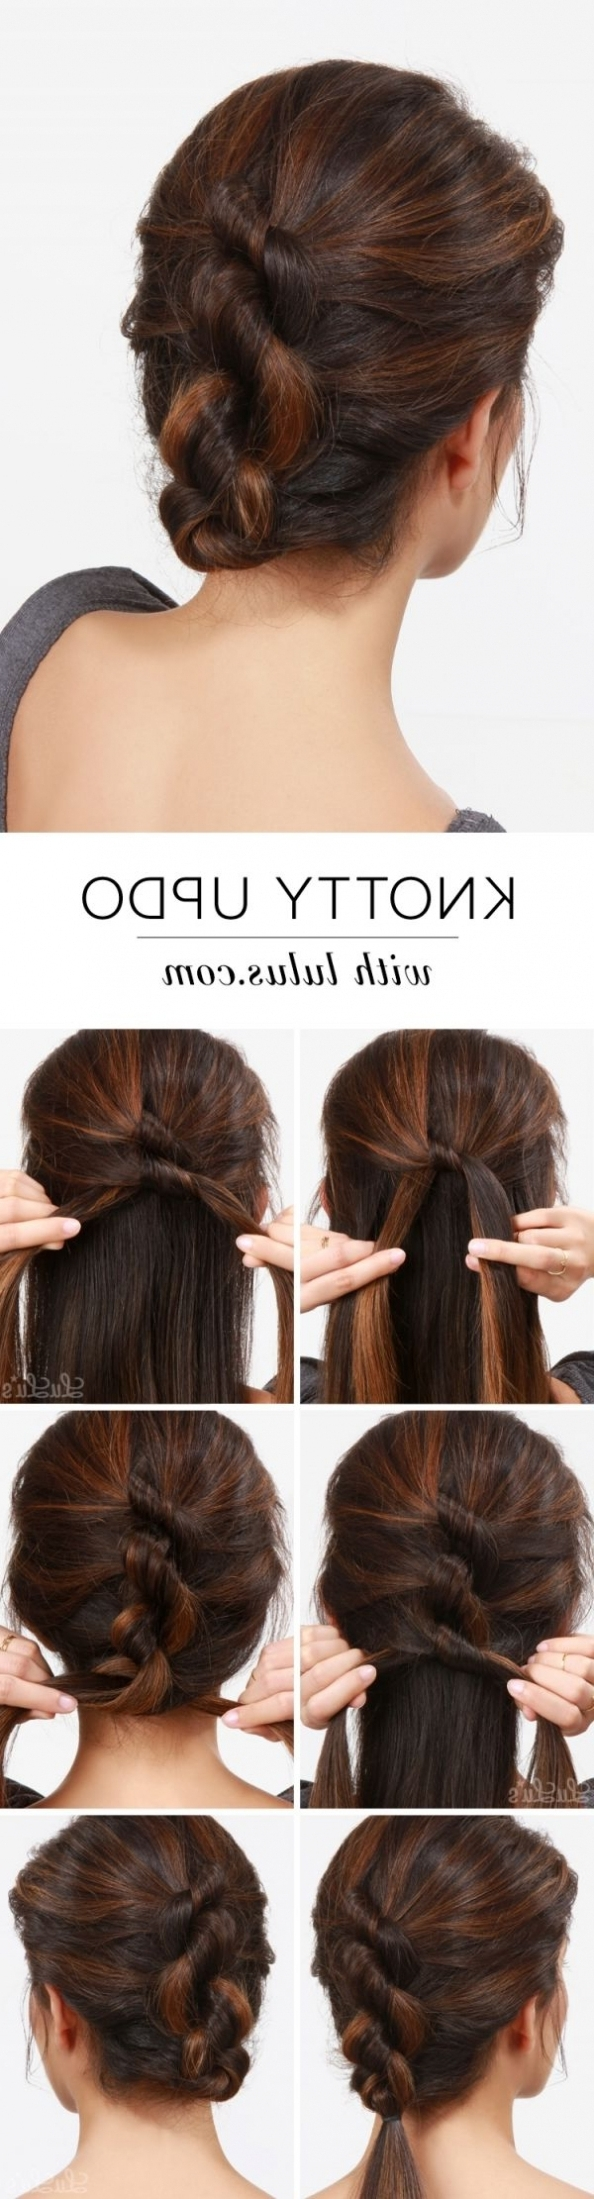 Hairstyles: Quick And Easy Updo Hairstyles For Long Hair (View 15 of 15)